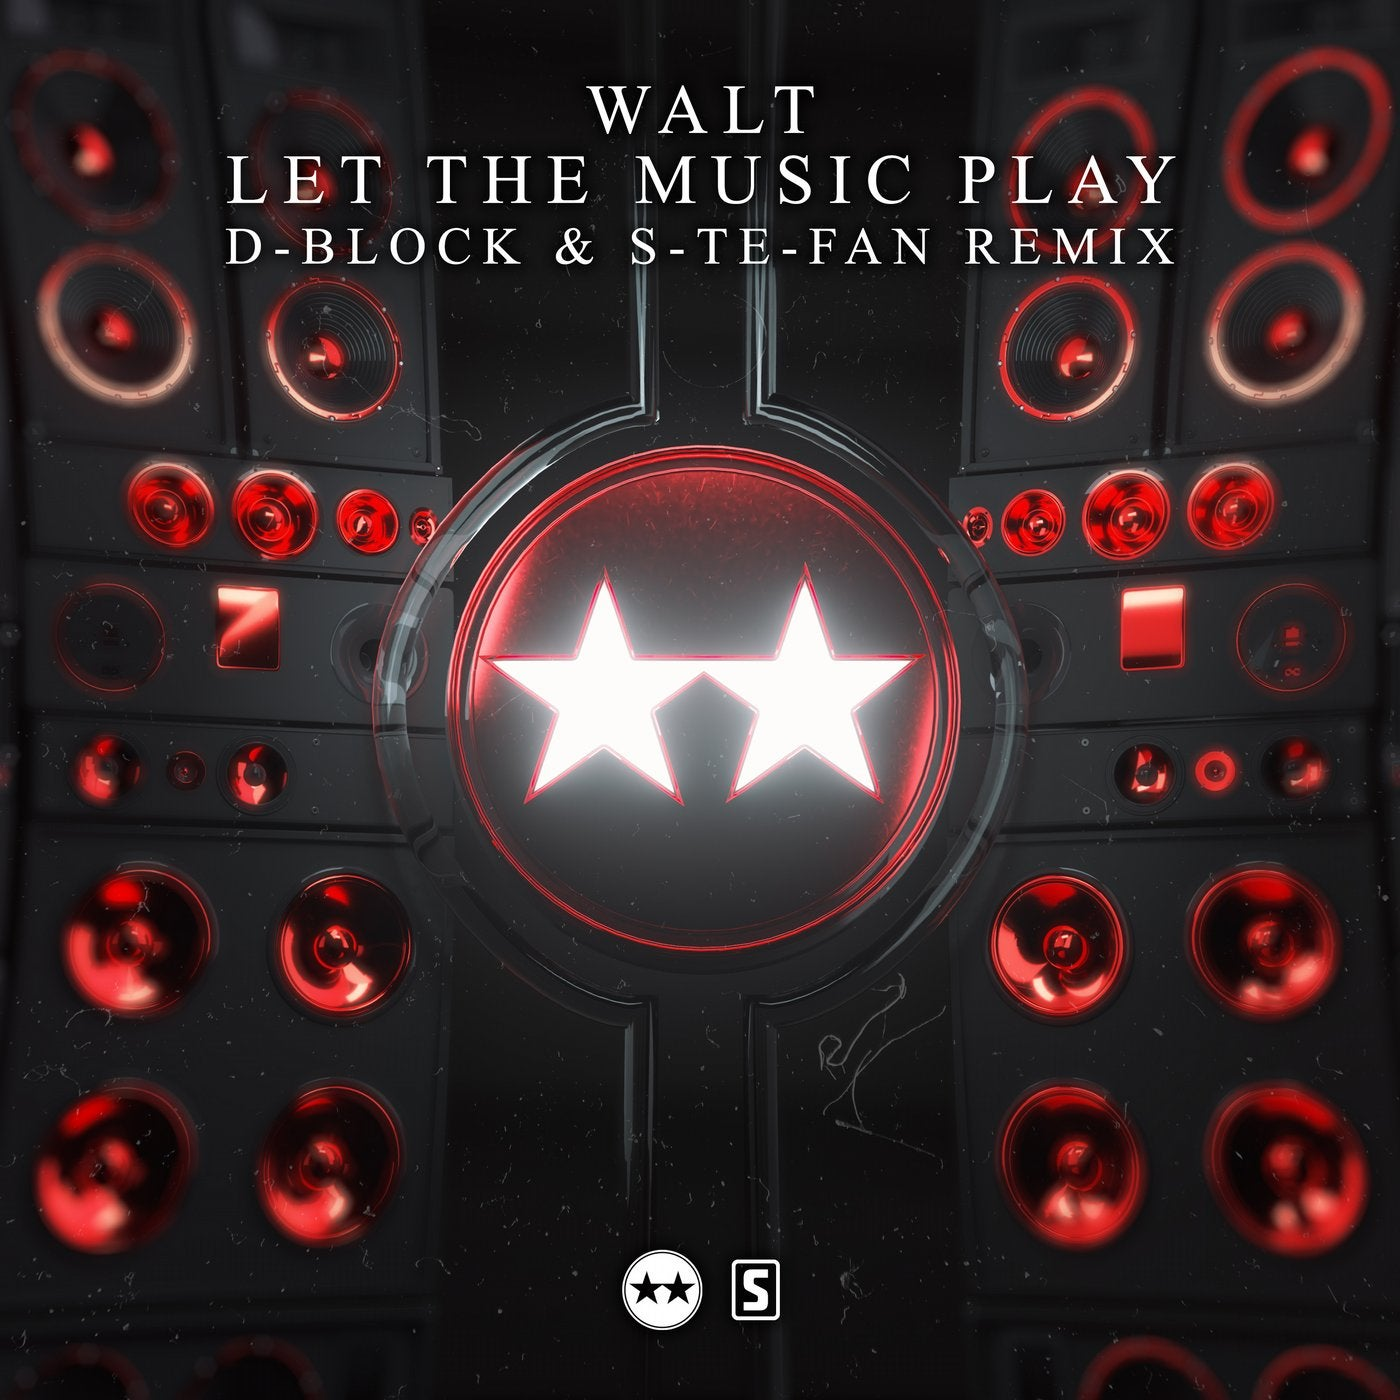 Let The Music Play (D-Block & S-te-Fan Remix) (Extended Mix)